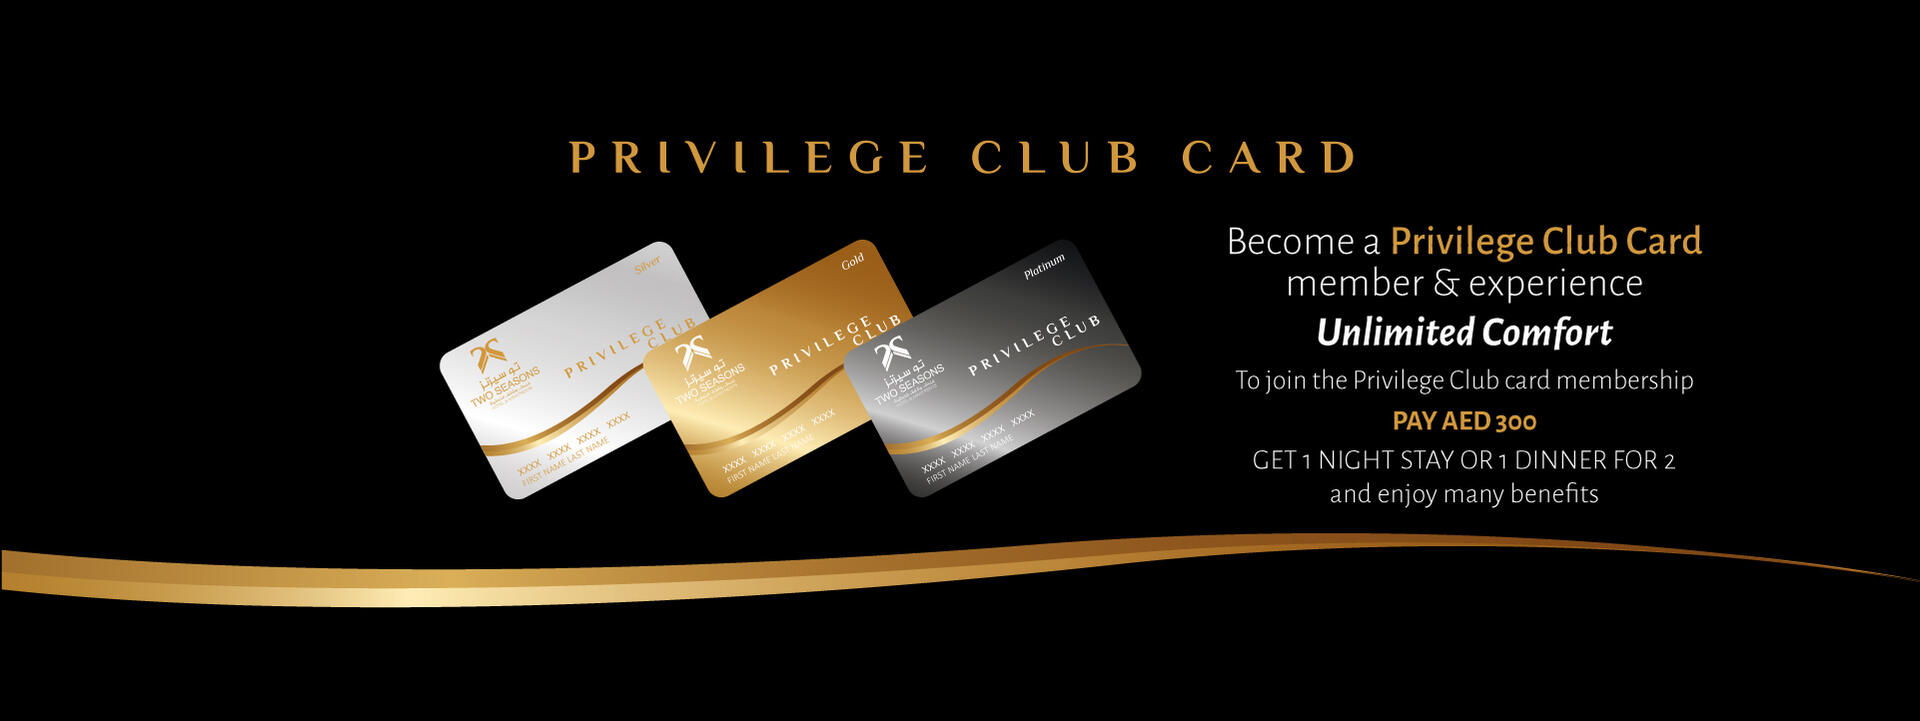 Privilege Club Card of Two Seasons Hotel & Apartments in Dubai